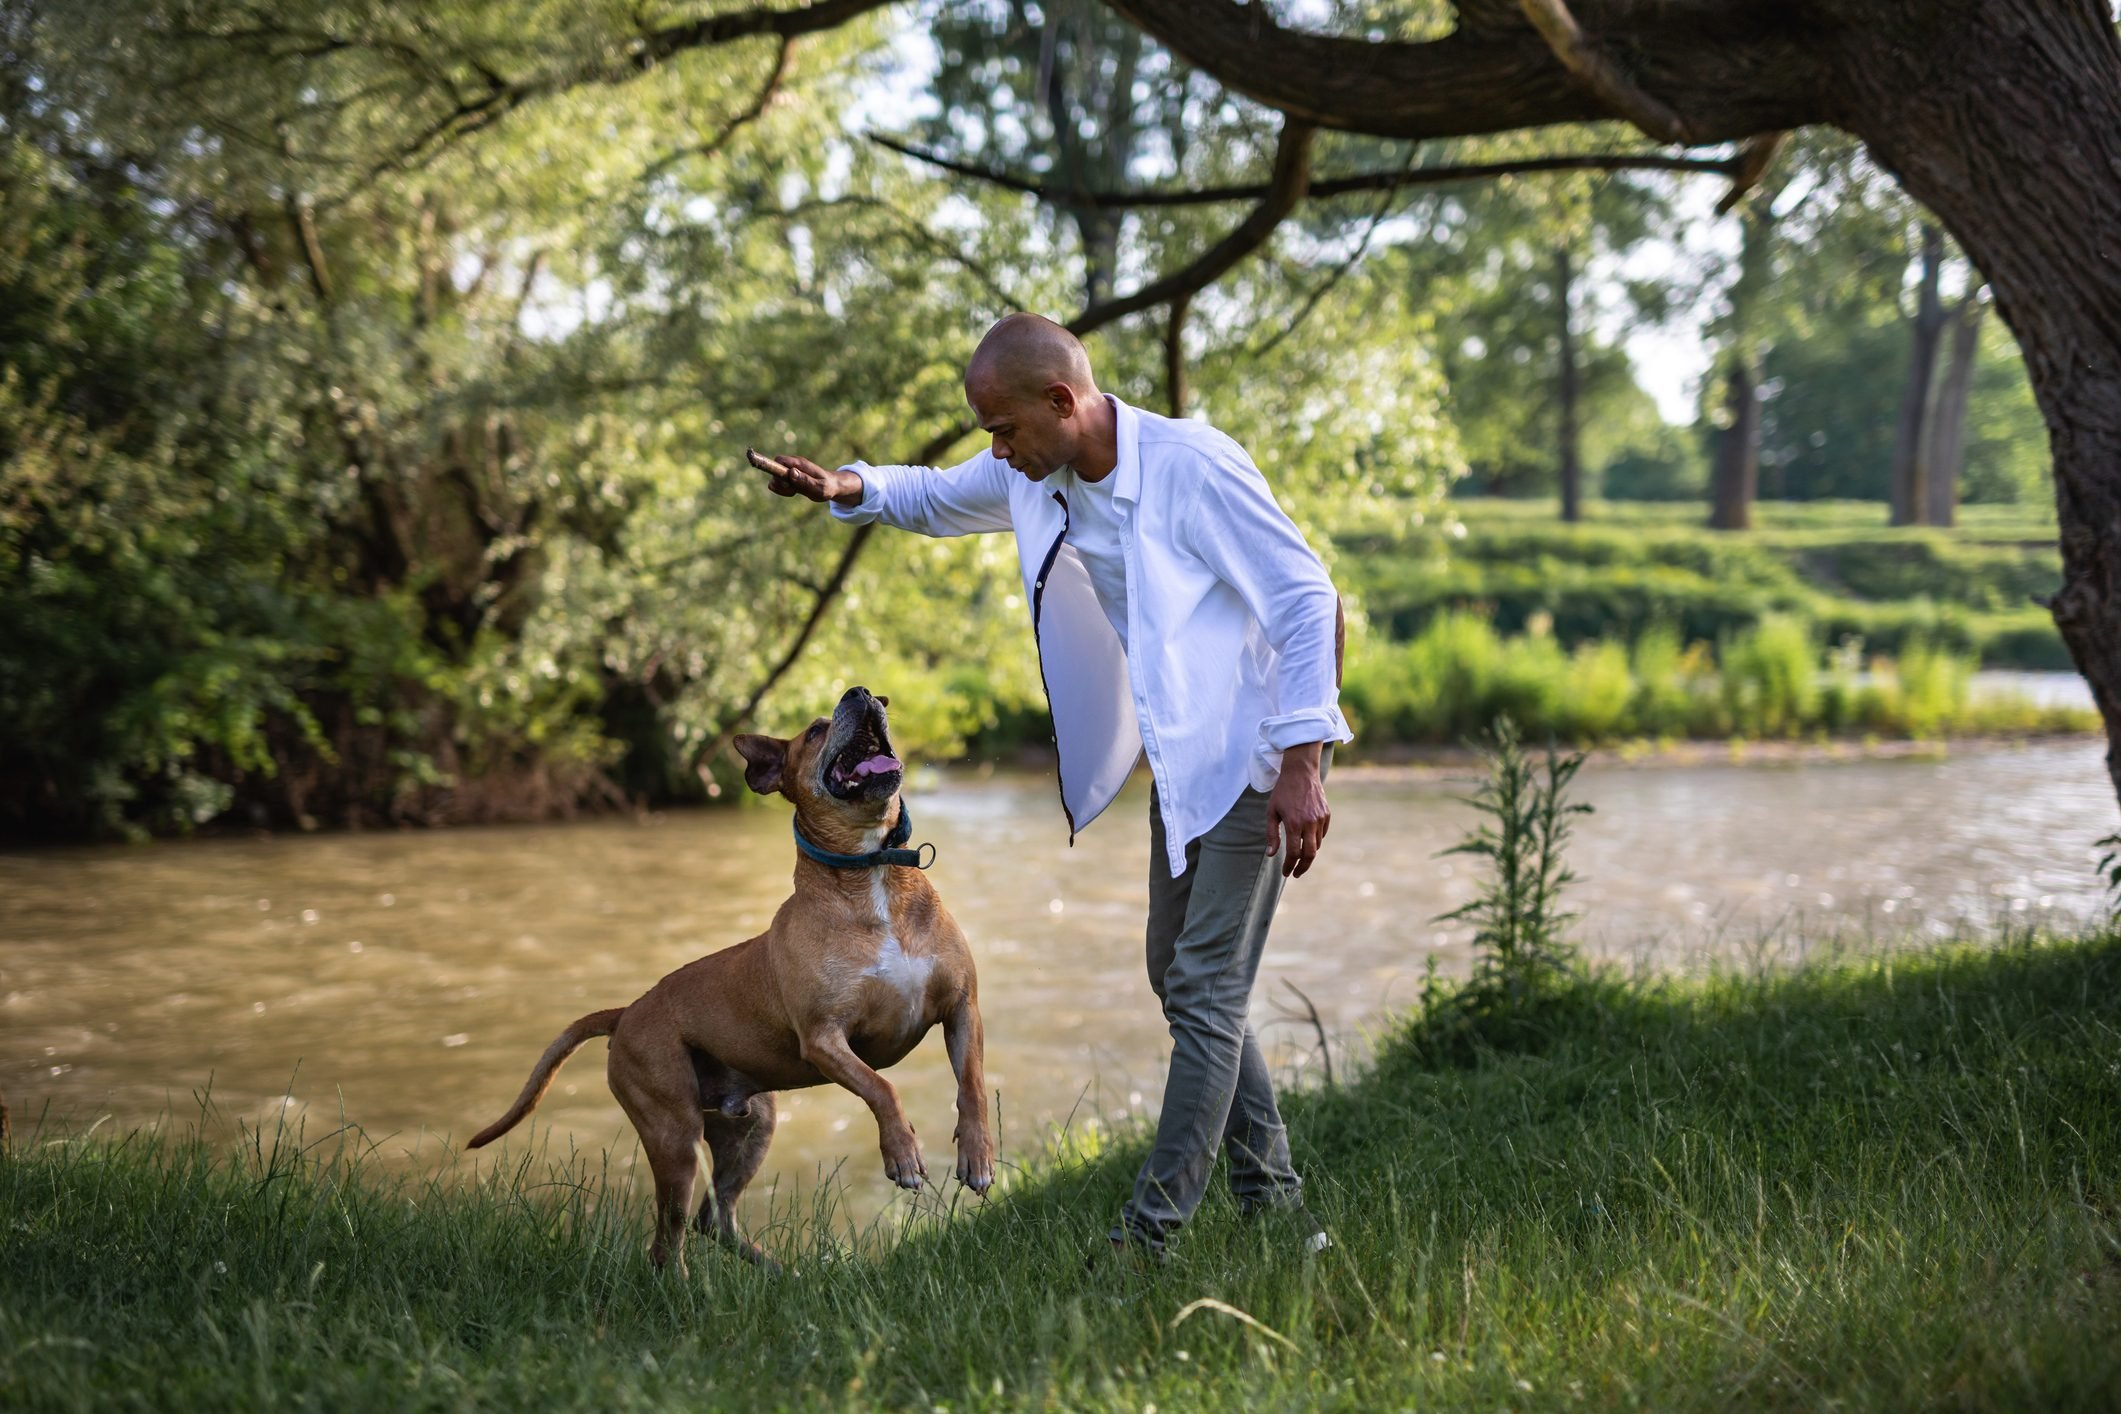 Man have fun with dog by the river